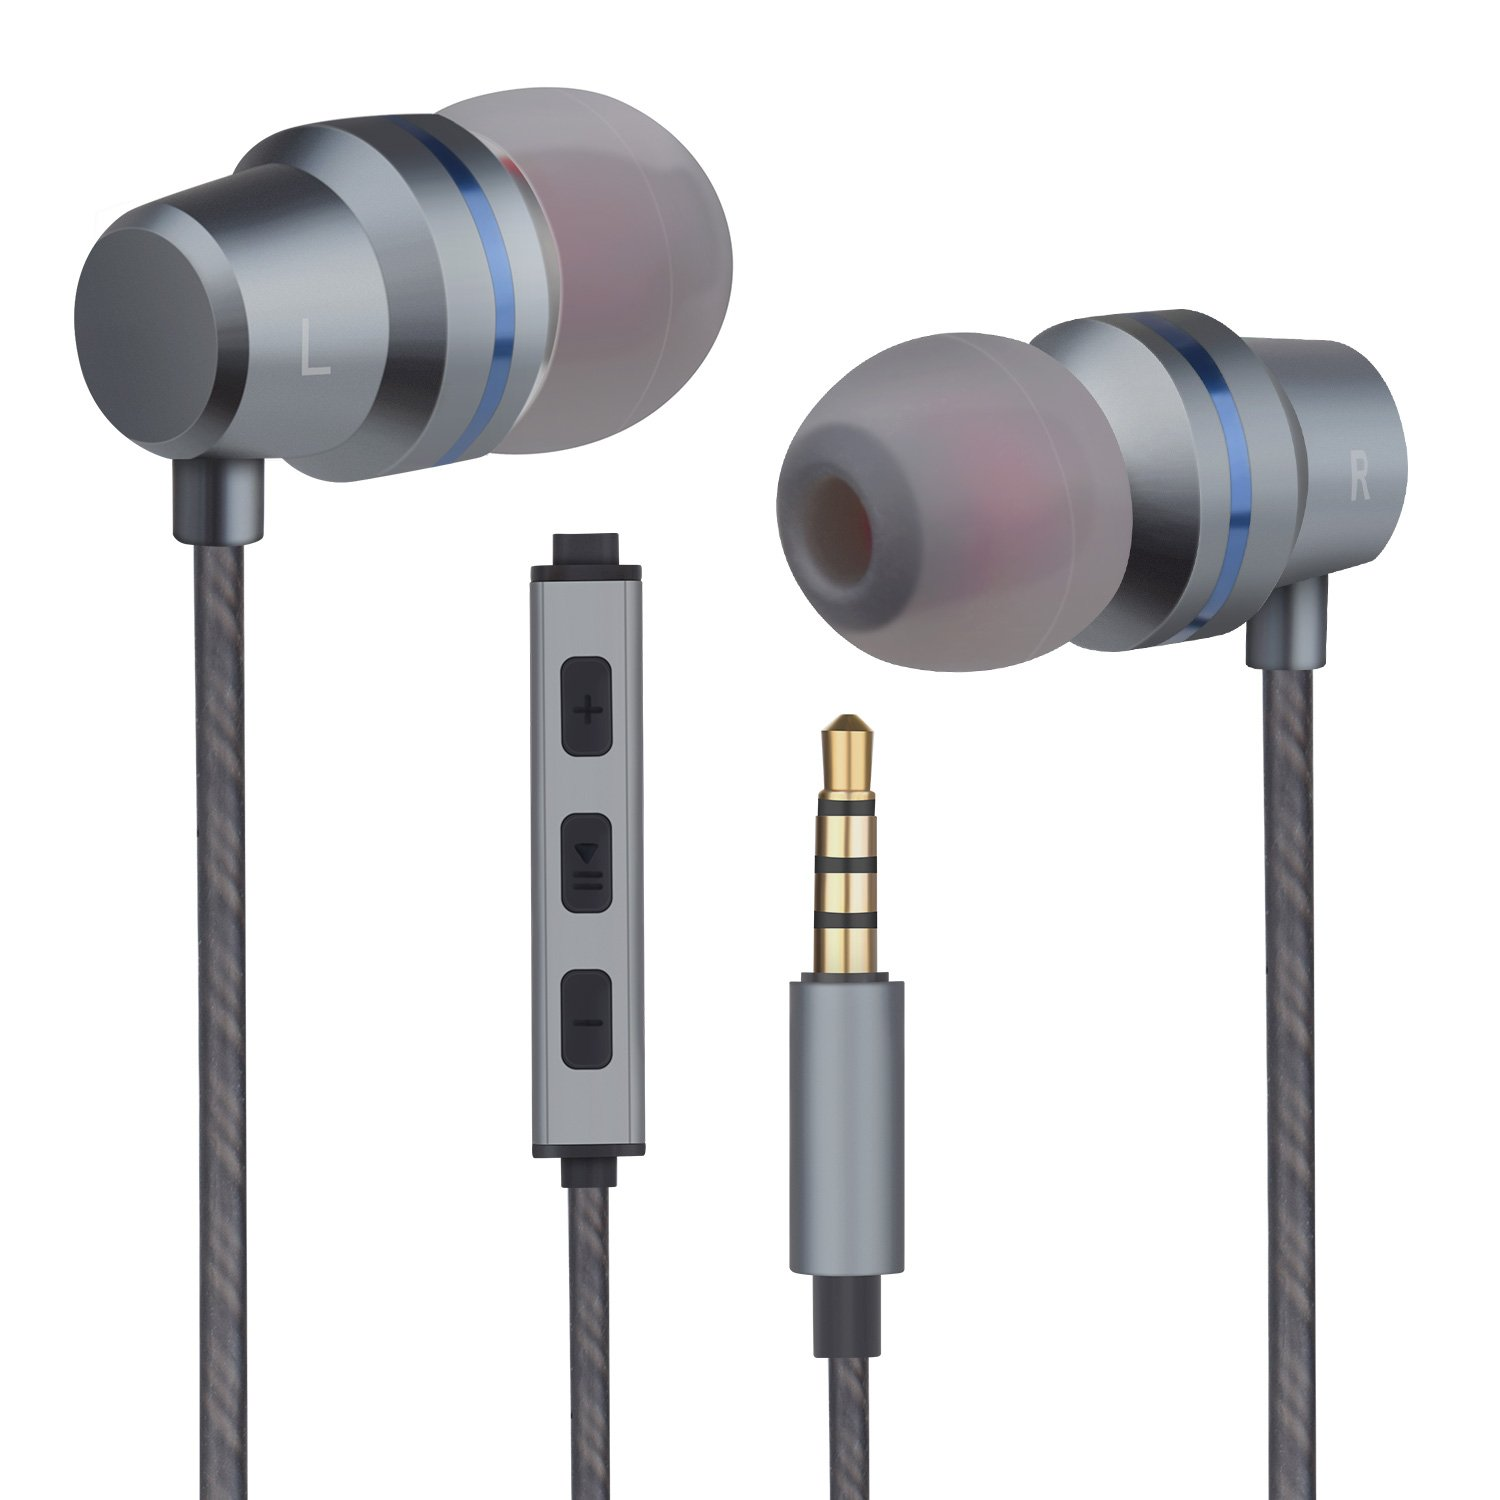 Earbuds Ear Buds Headphones Volume Control Stereo in-Ear Earphones Microphone Mic Wired Earbuds Earphone MP3 Players Compatible iPhone 5/5s/6/6s,Samsung,HTC,More Android Smart Phones